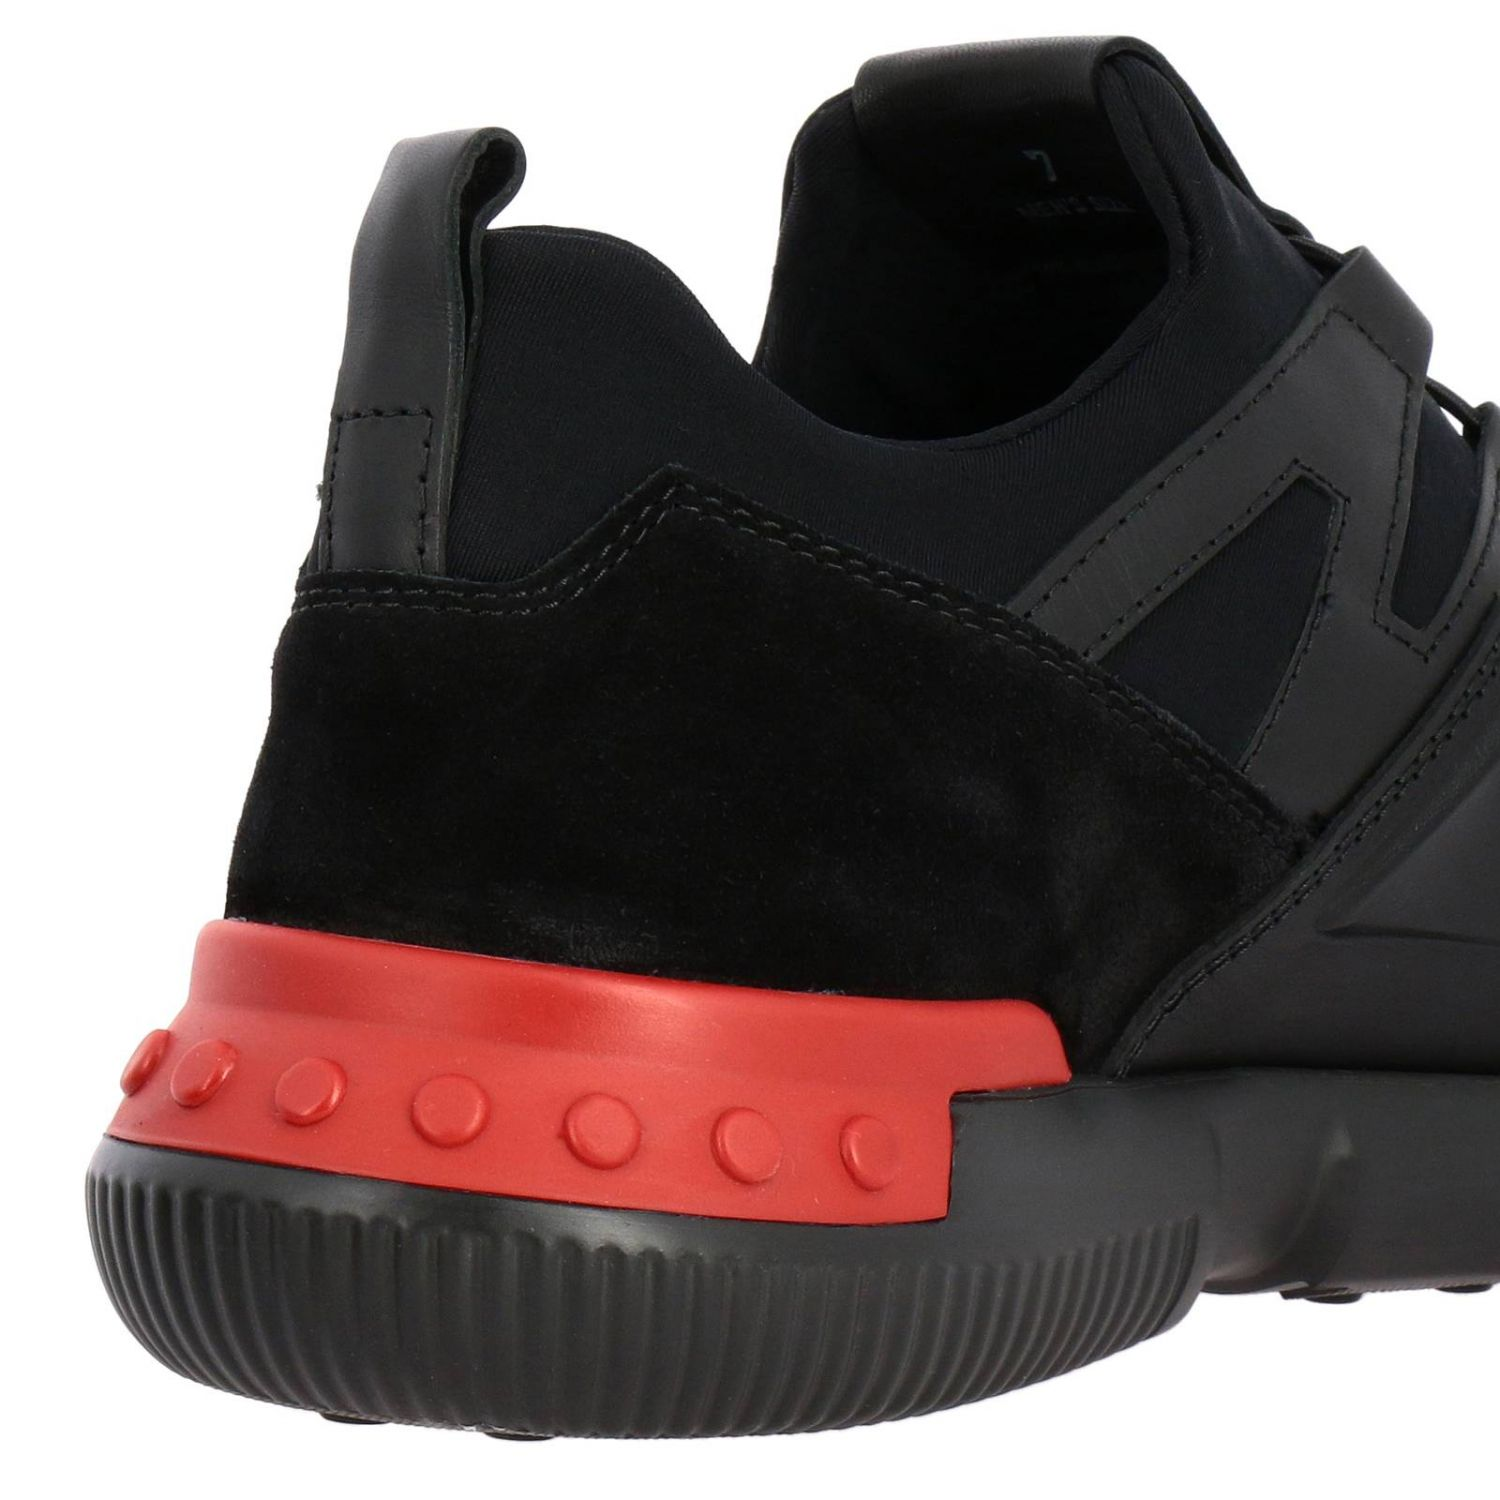 No code Active Sport Tod's sneakers in suede and neoprene leather with elastic laces black 4